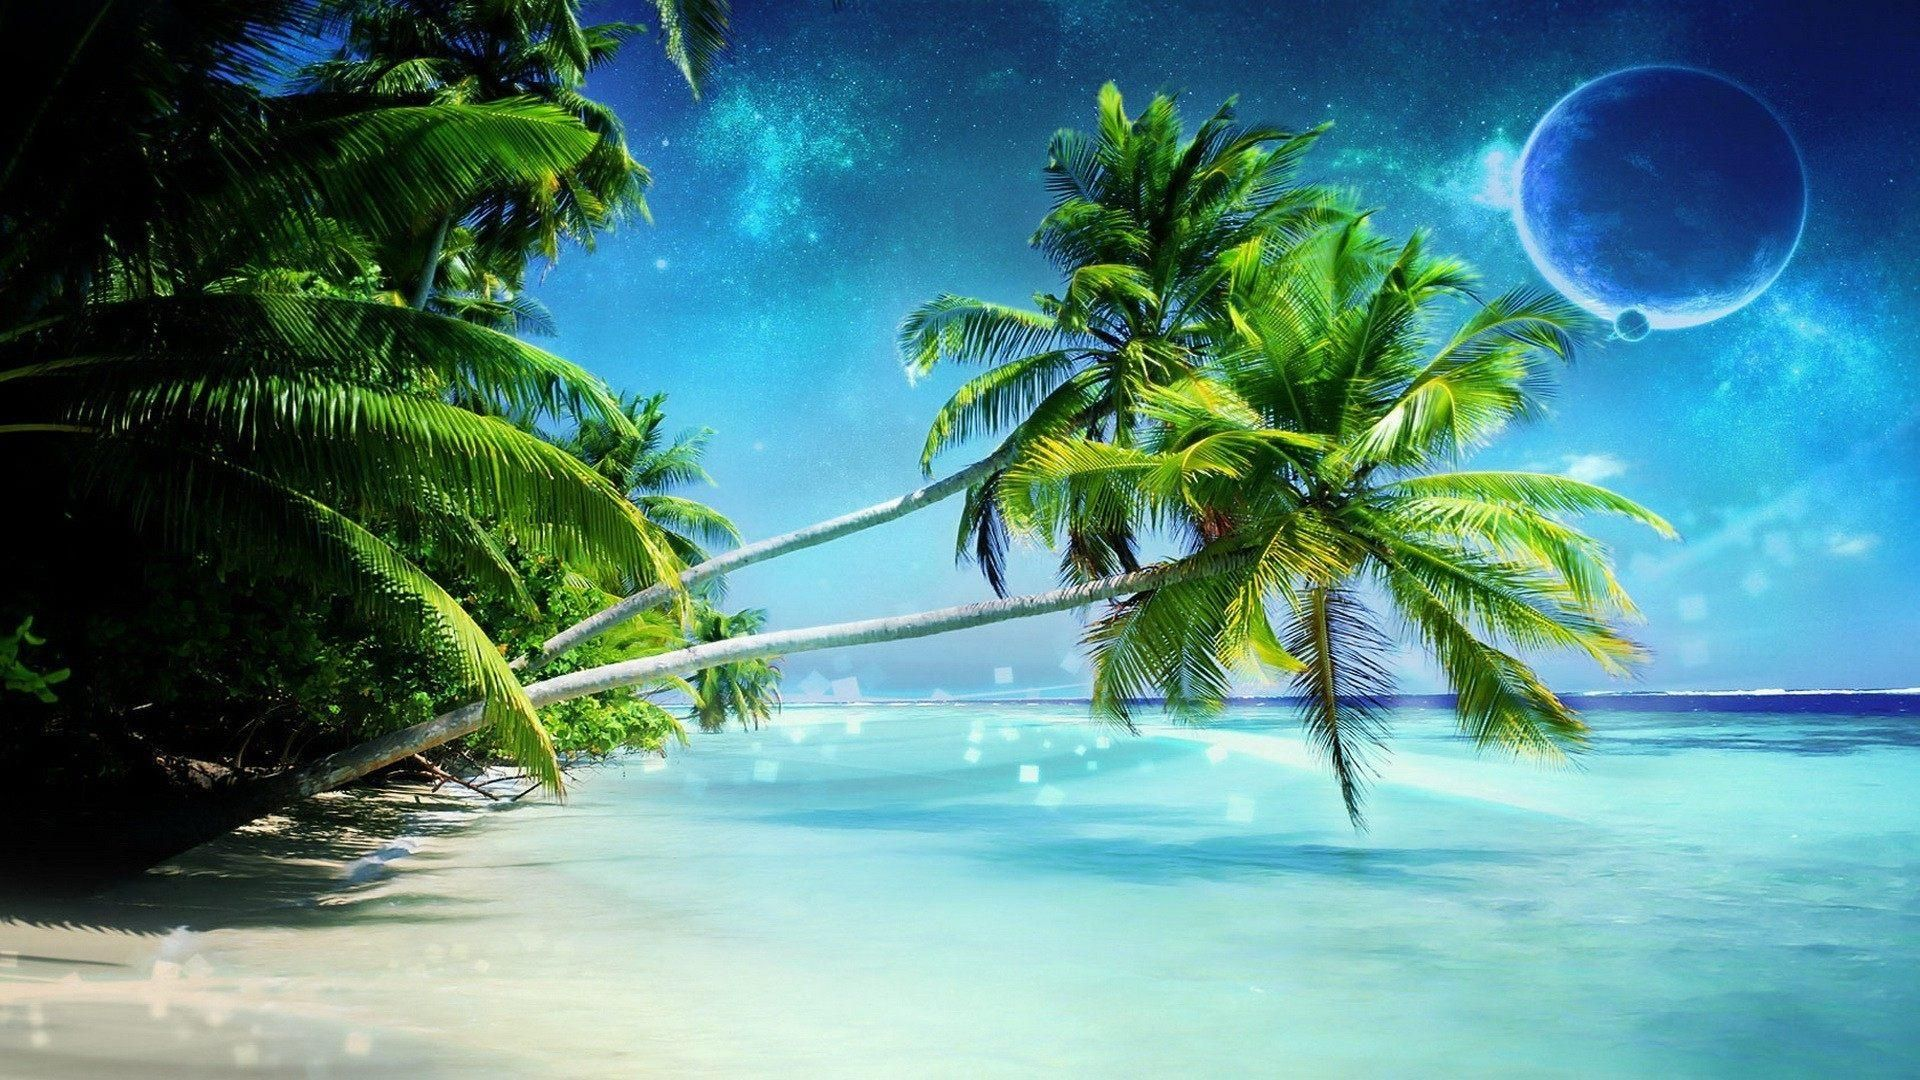 Palm Tree Wallpapers Wallpaper × Pictures Of Palm Trees